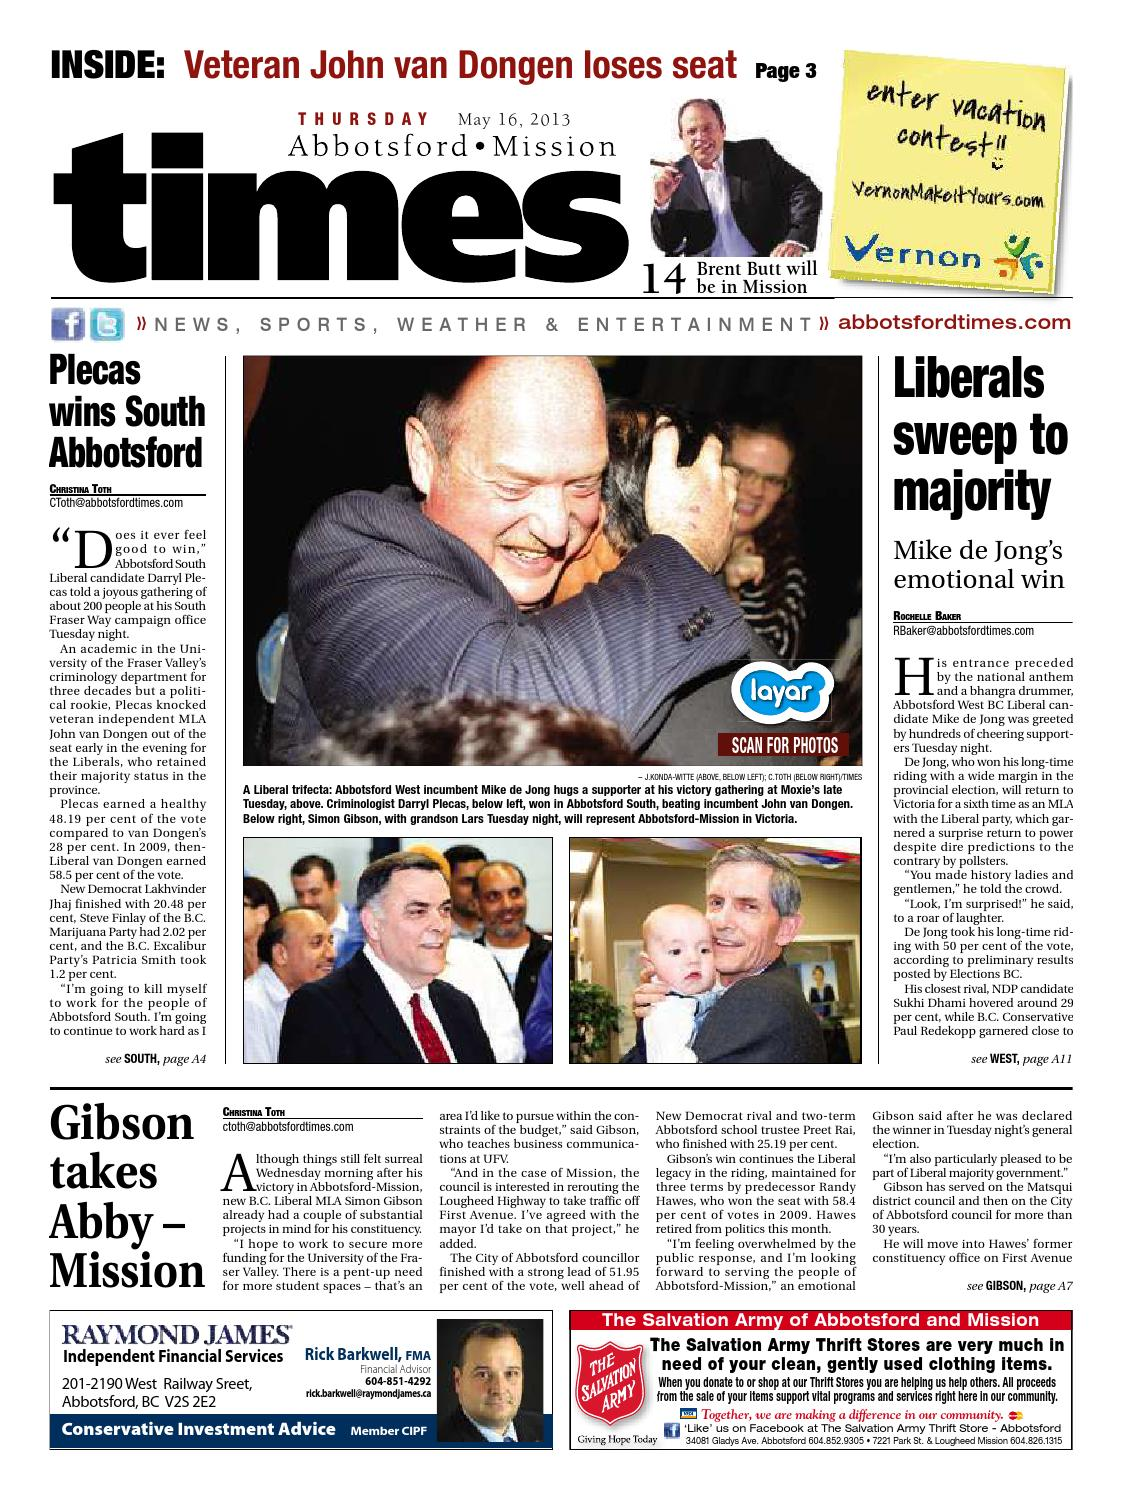 Abbotsford Times - May 16, 2013 by Abbotsford Times - issuu